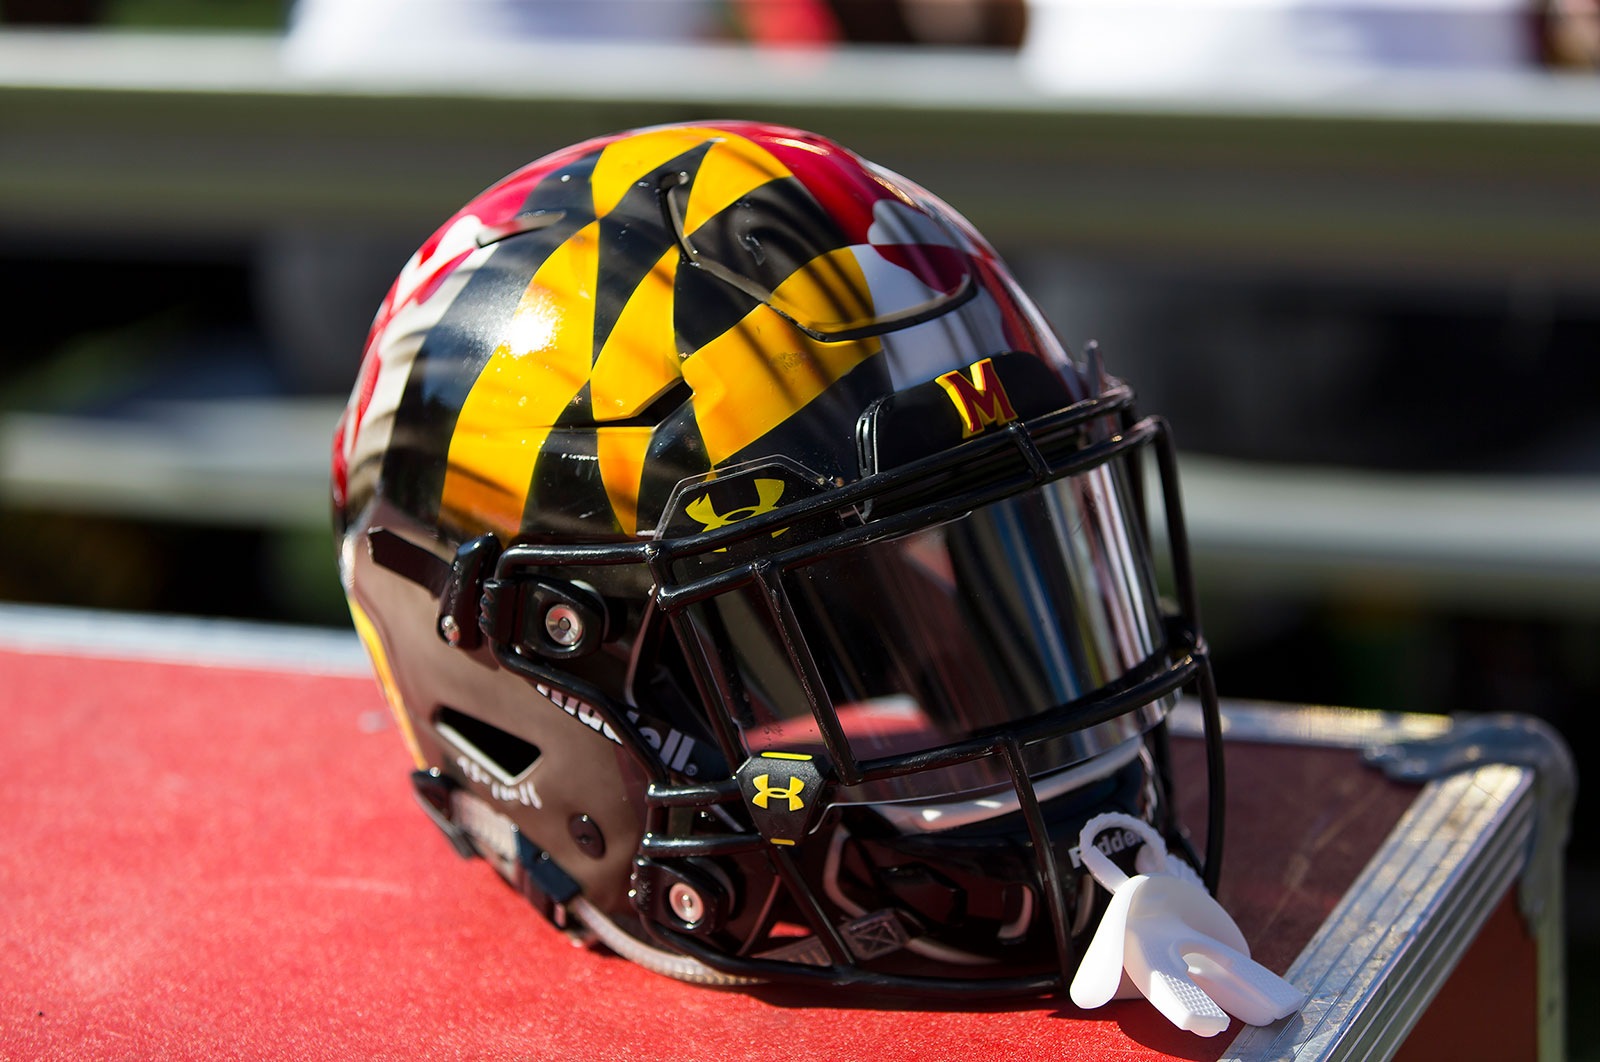 The University of Maryland has temporarily suspended its voluntary, individual training for the football program after nine individuals tested positive for Covid-19.